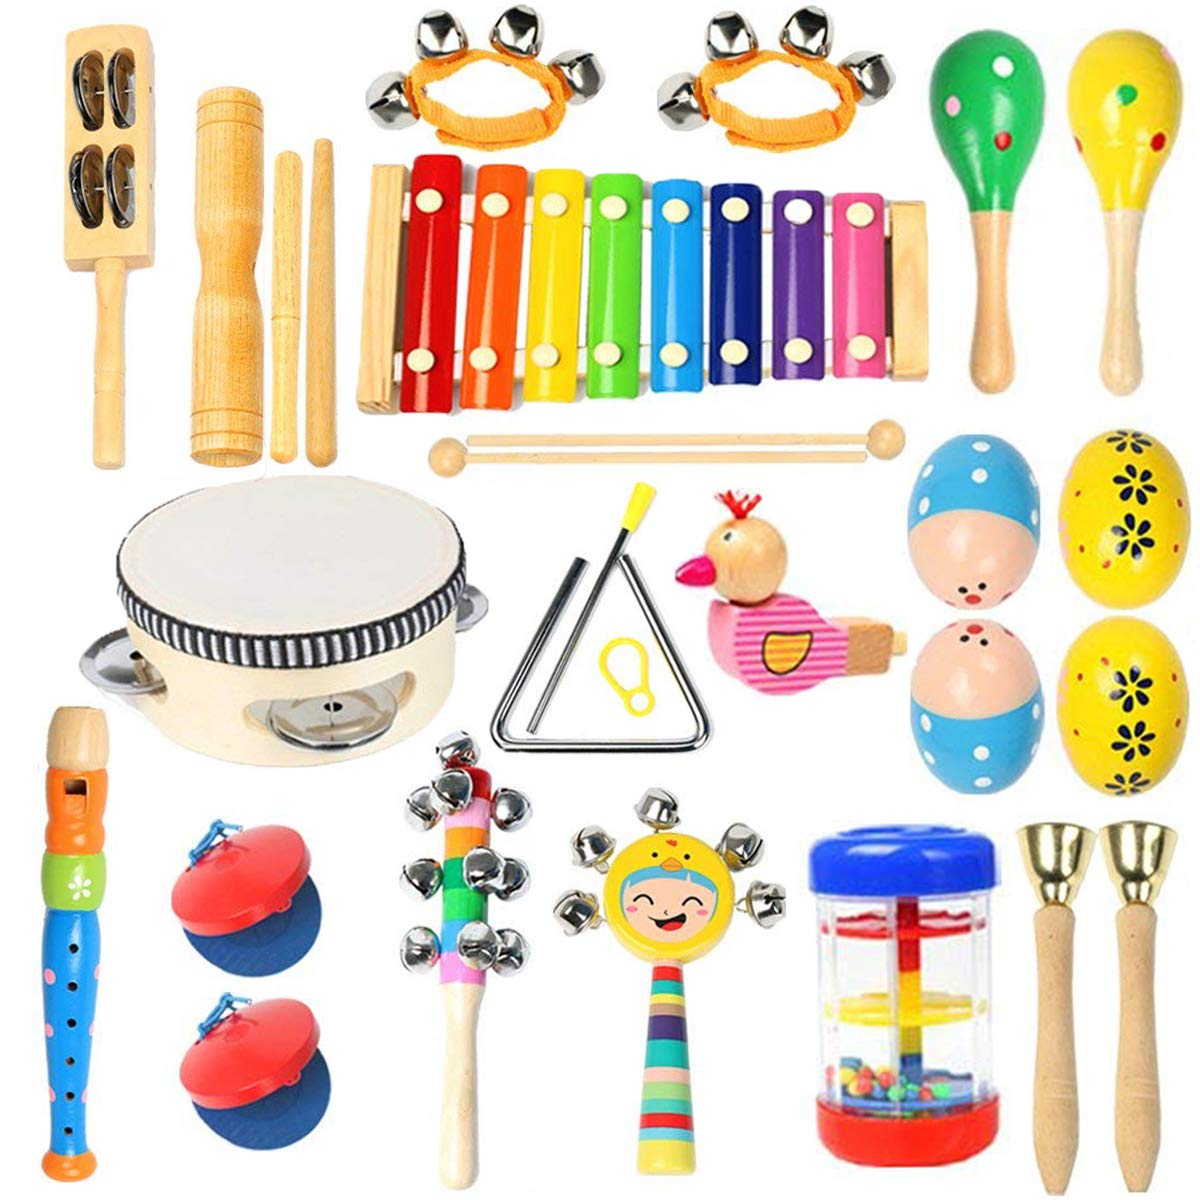 Toddler Musical Instruments- Ehome 15 Types 22pcs Wooden Percussion Instruments Toy for Kids Preschool Educational, Musical Toys Set for Boys and Girls with Storage Backpack by Ehome